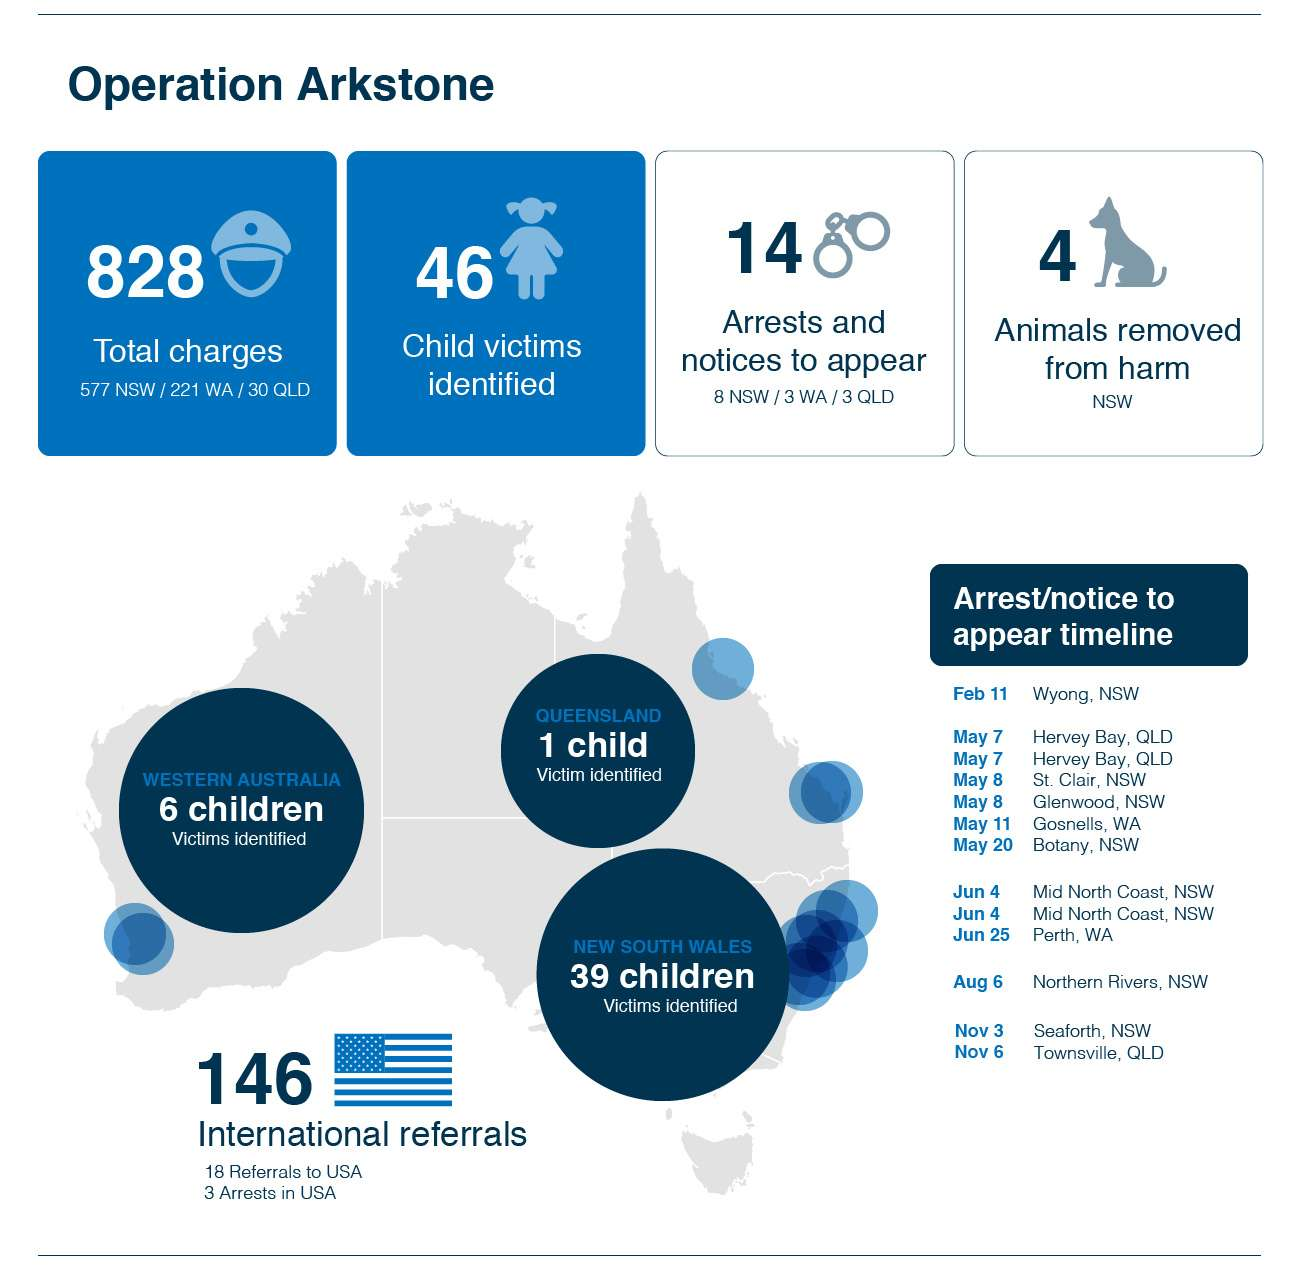 NED-2741-Operation-Arkston - 0